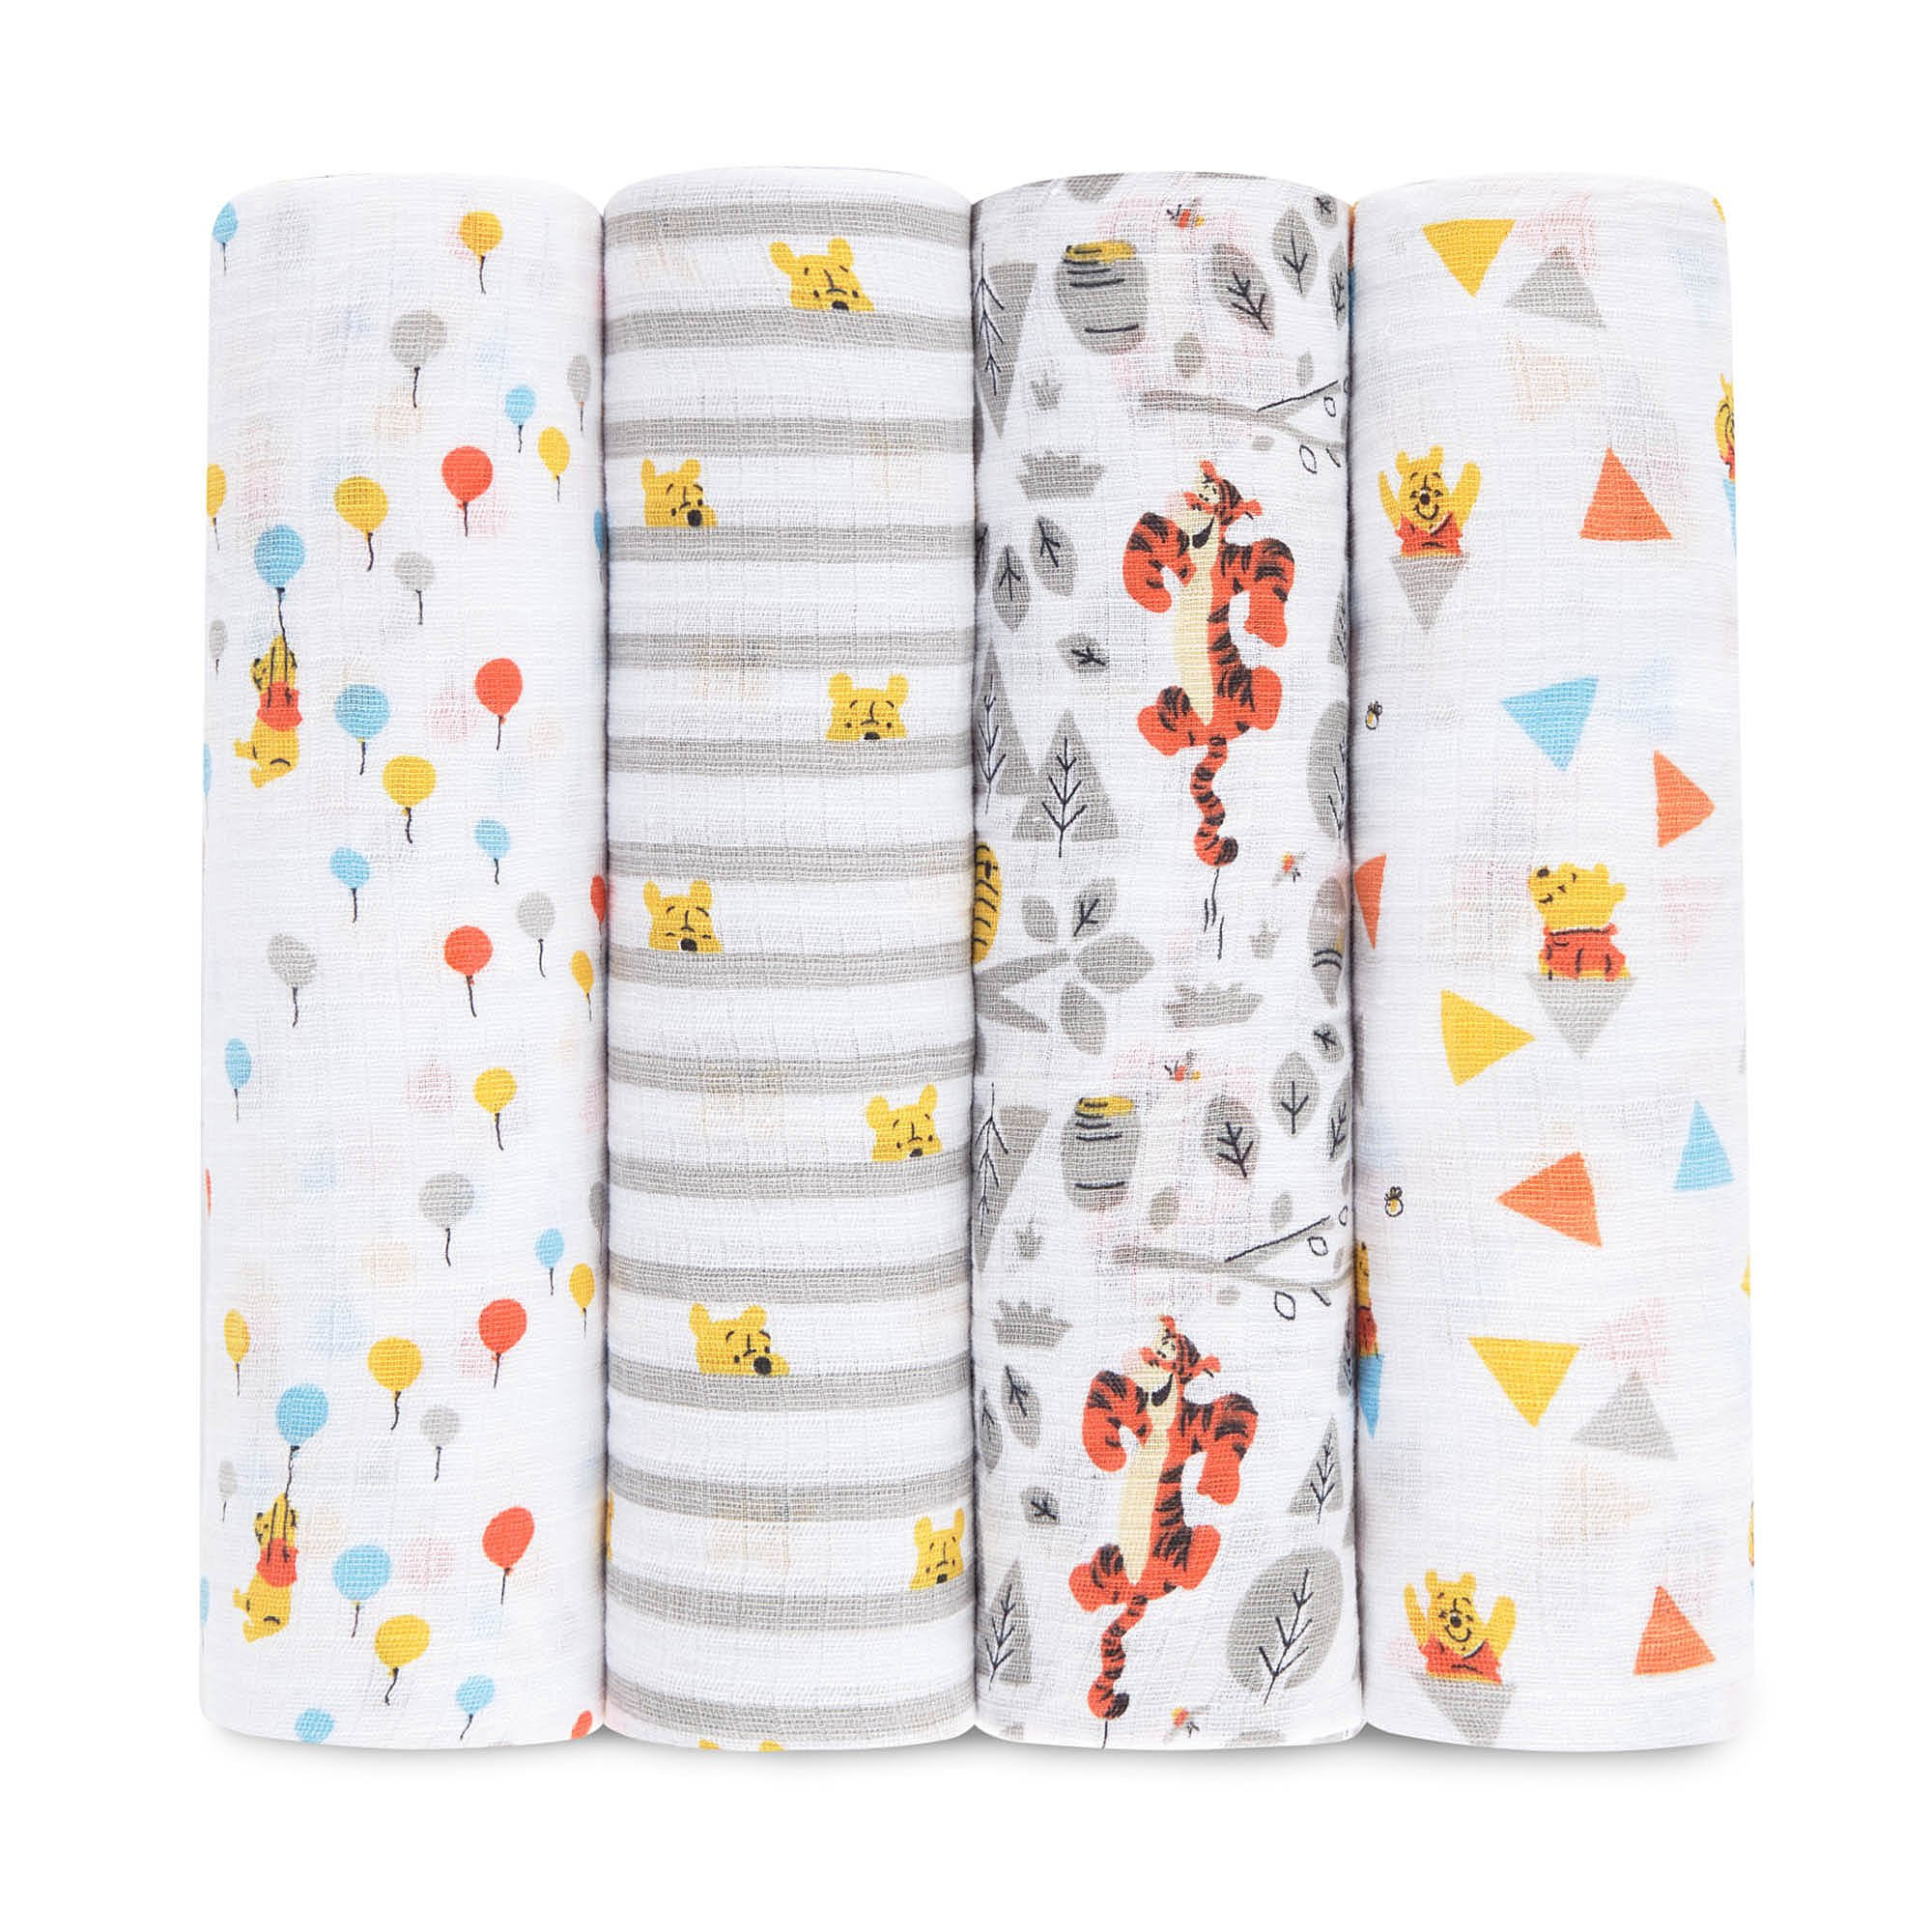 aden + anais Disney, Swaddle Blanket   Boutique Muslin Blankets for Girls & Boys   Baby Receiving Swaddles   Ideal Newborn & Infant Swaddling Set   Perfect Shower Gifts, 4 Pack, Winnie the Pooh by aden by aden + anais